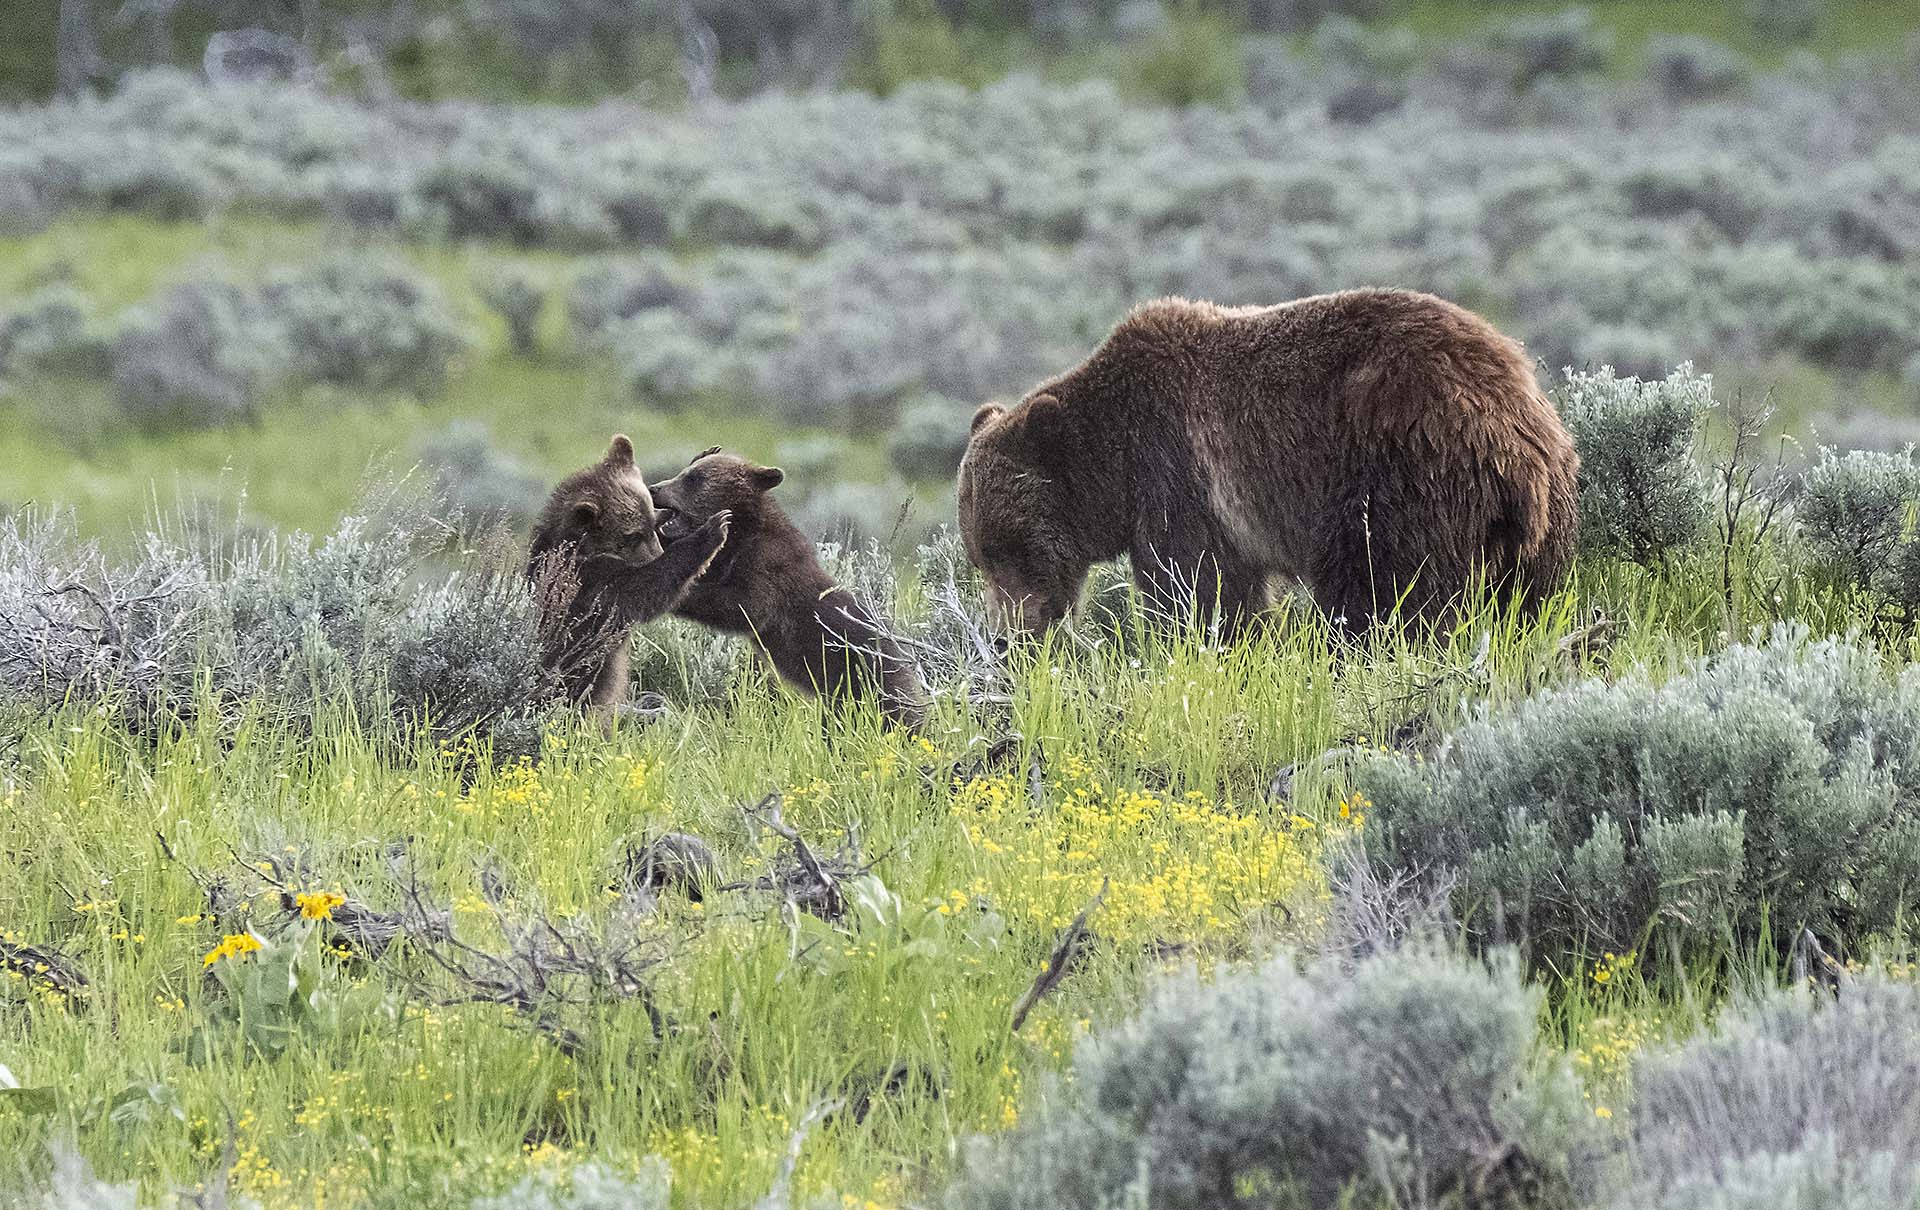 Grizzly Bear 399 with her Cubs, Grand Teton National Park